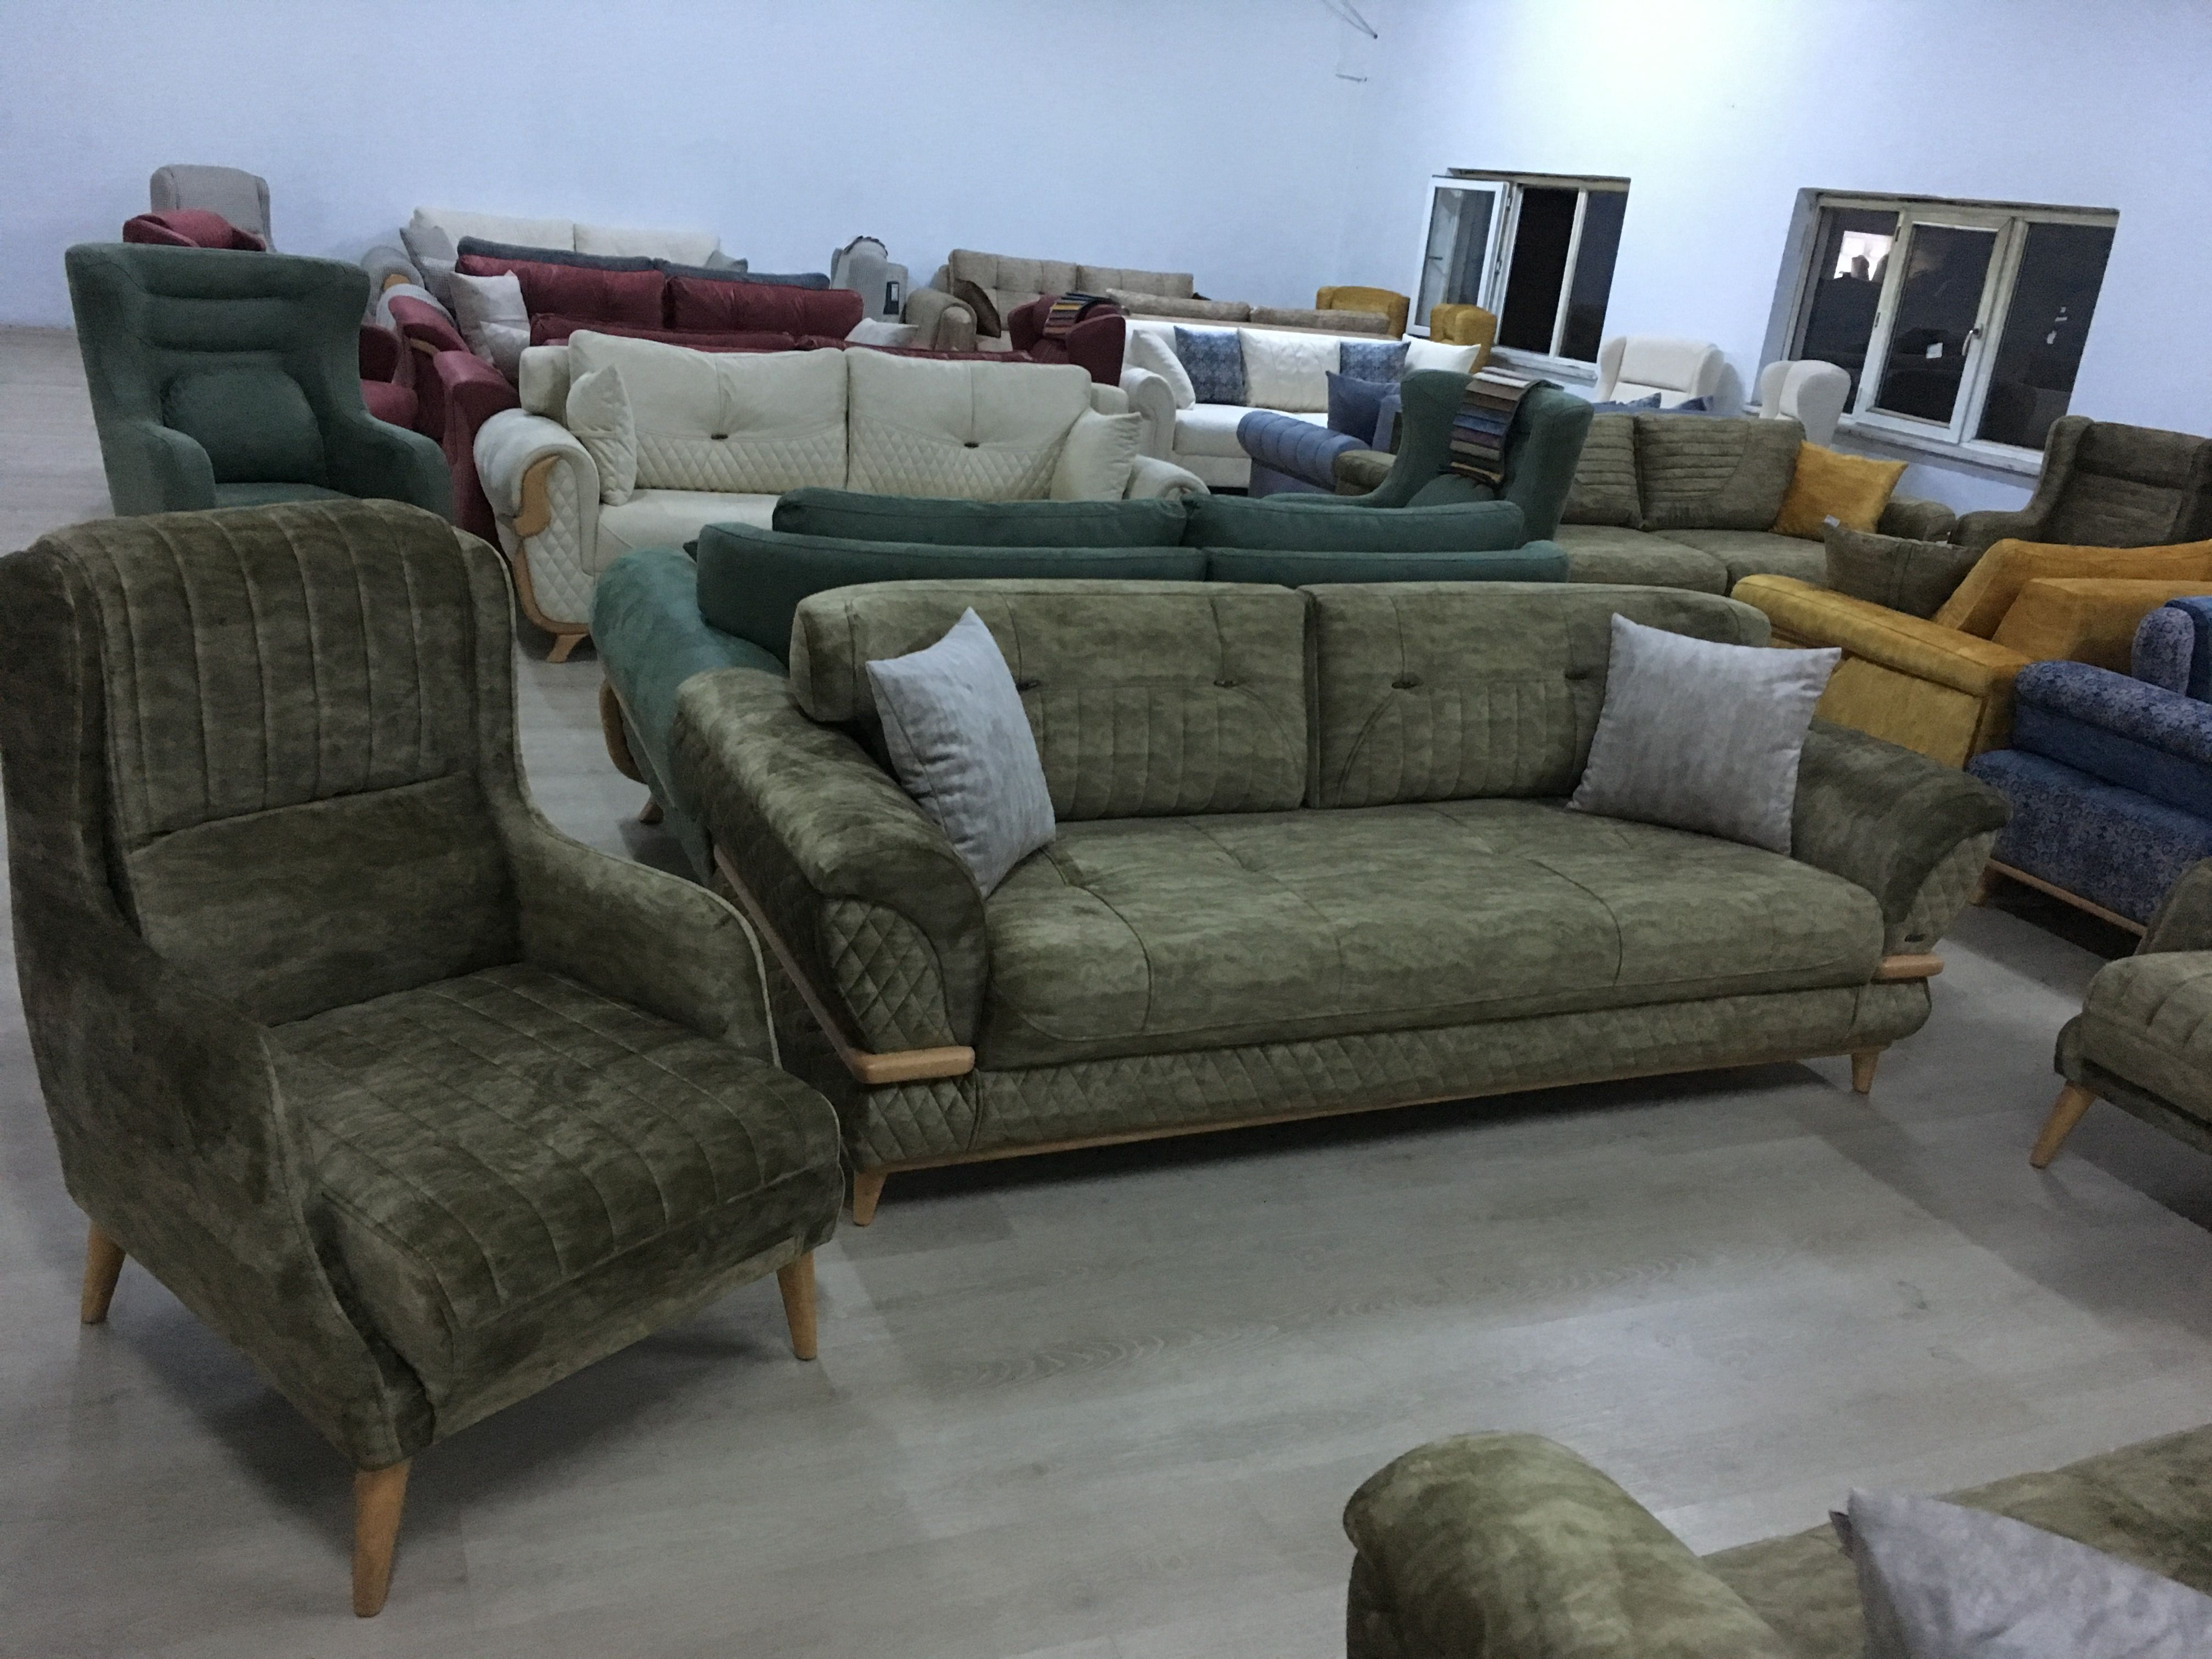 Pin By Raed Alrafate On By Yunus Bican Furniture Sofa Furniture Living Room